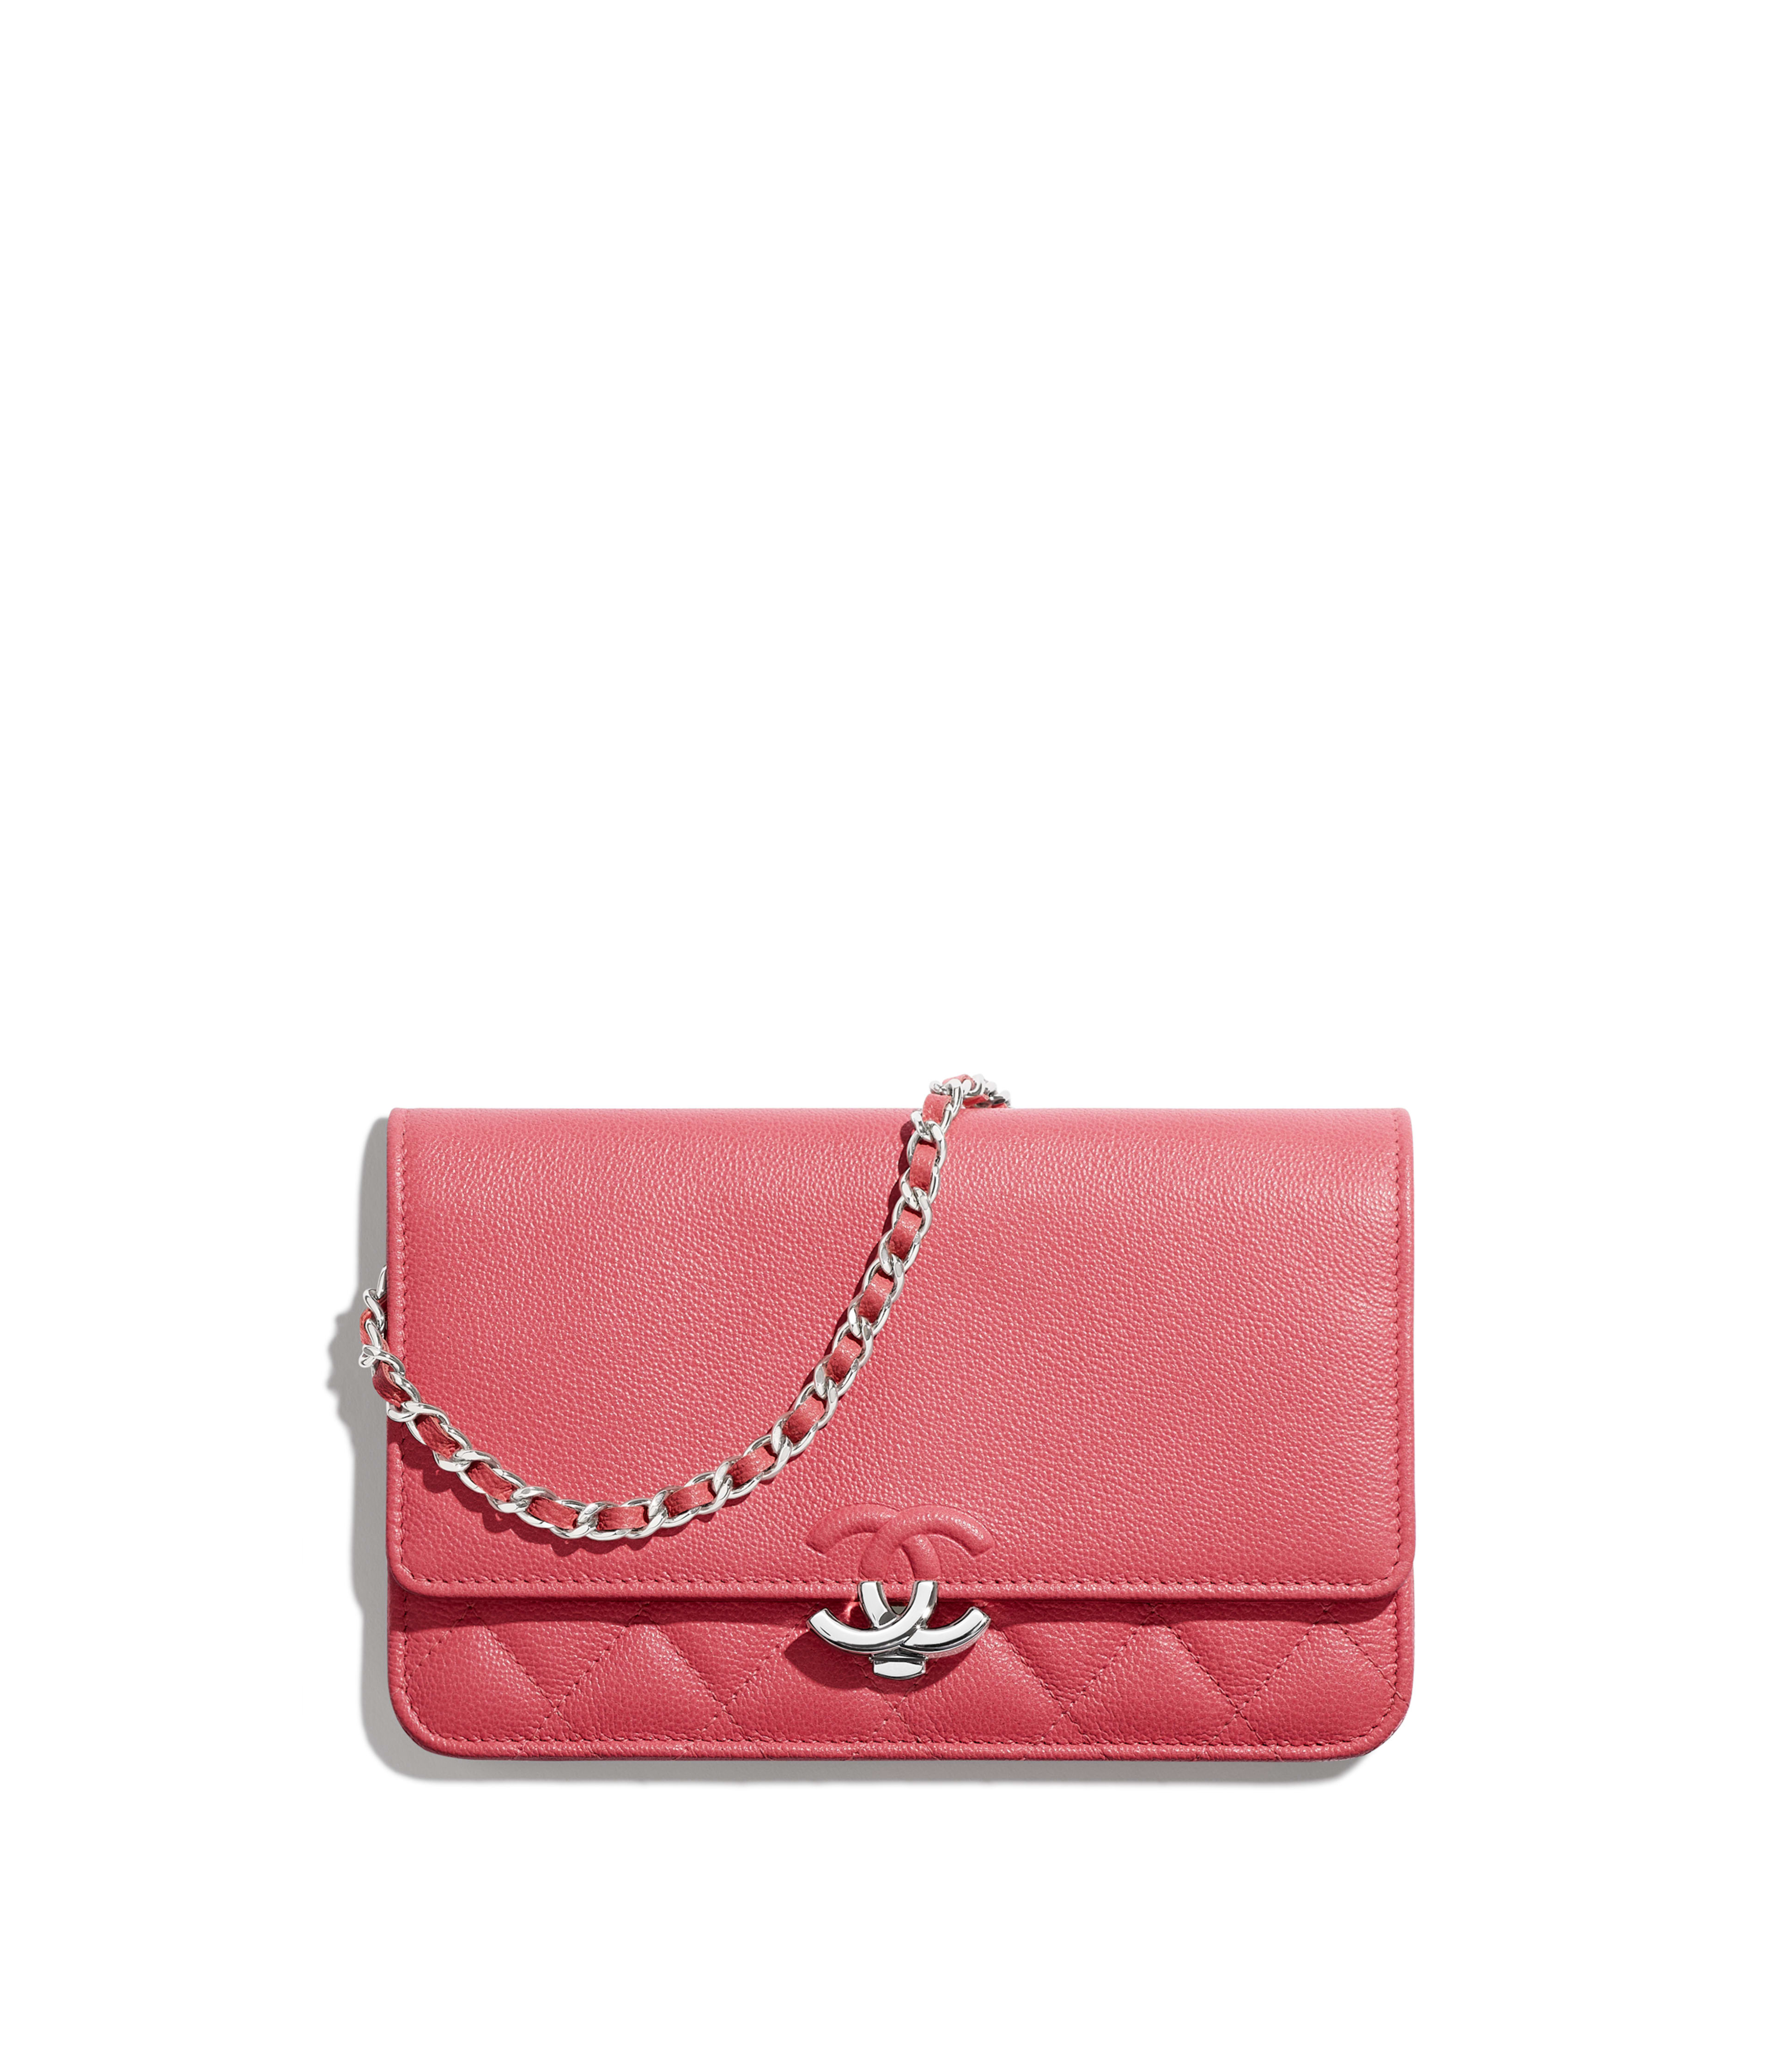 Wallet on Chain Grained Calfskin   Silver-Tone Metal, Pink Ref.  A84428B00035N0412 98f8327ac4